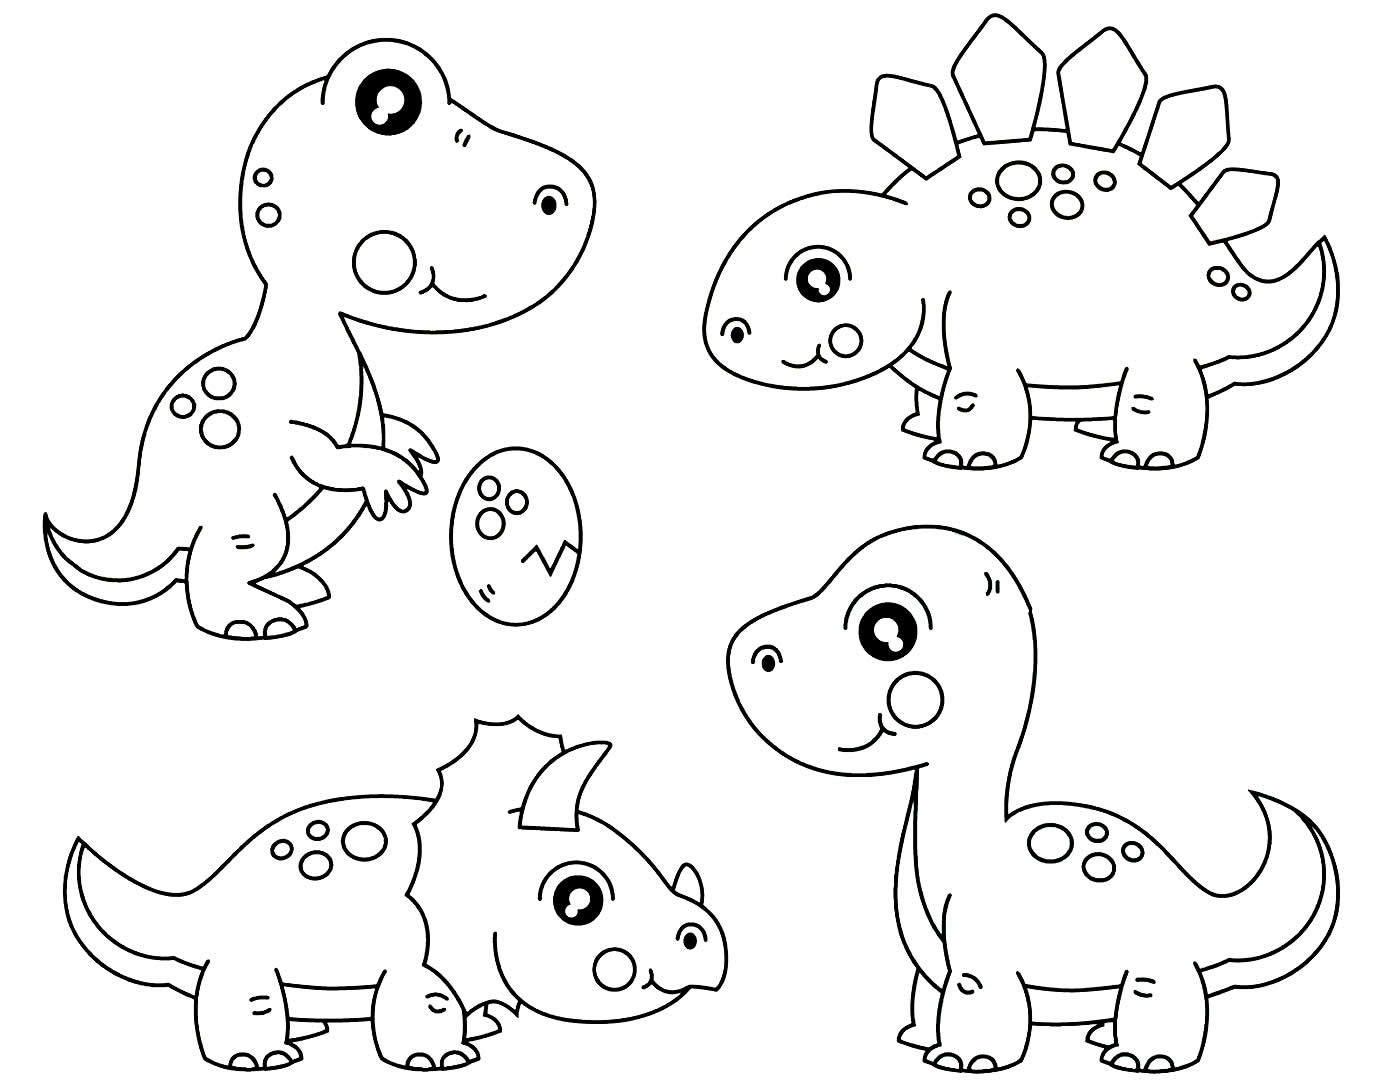 Dinosaur molds for painting